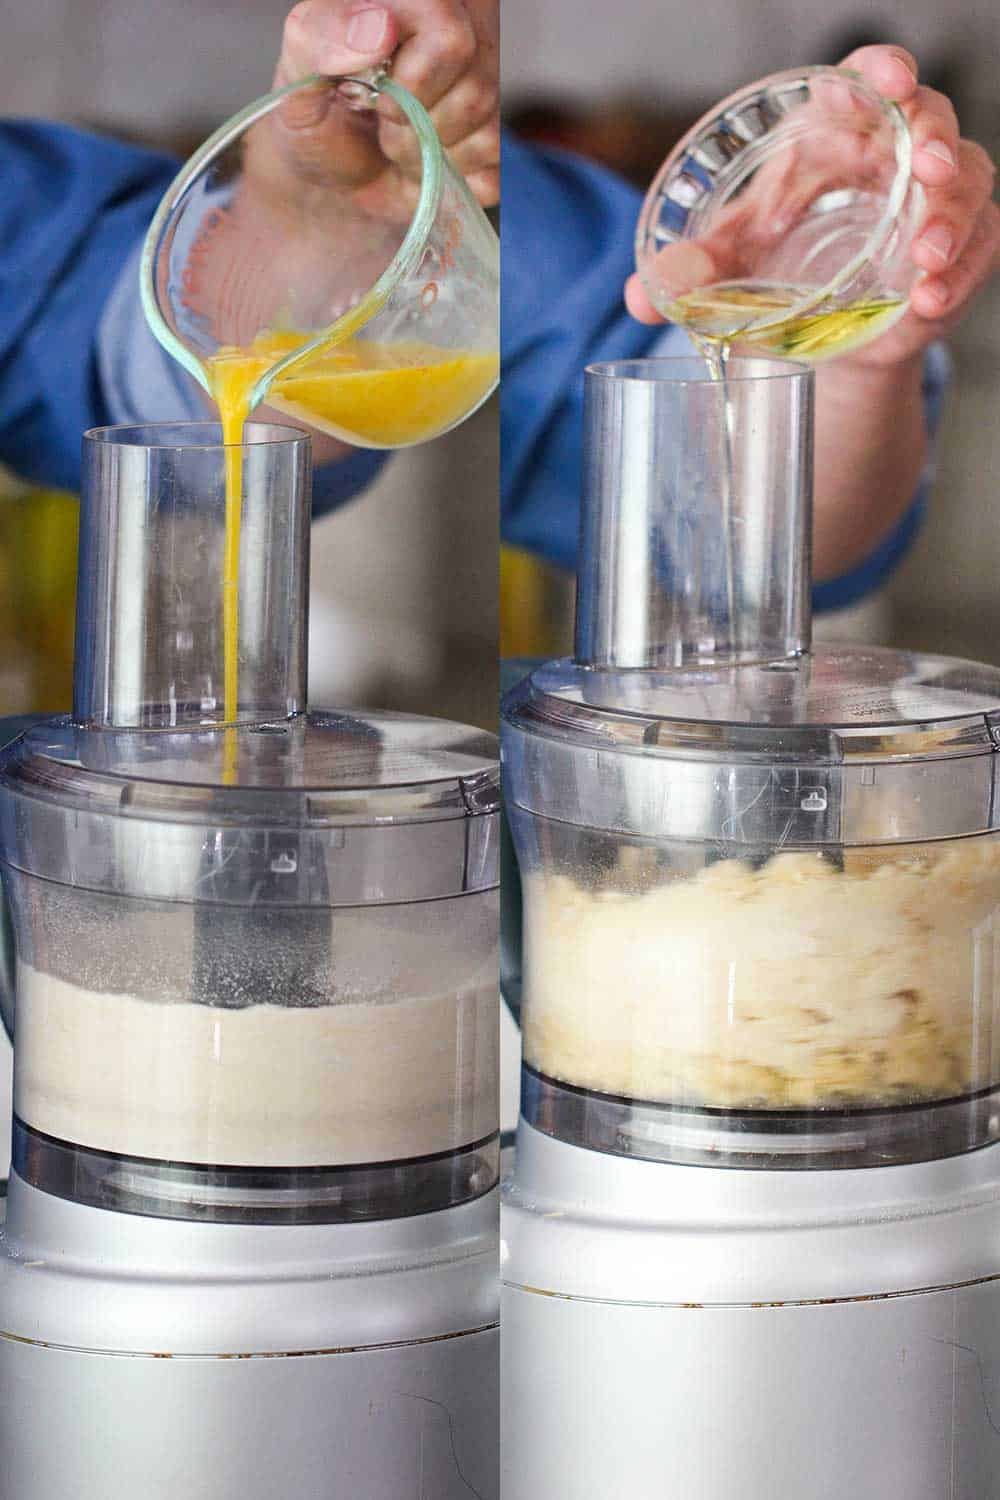 Two views of a food processor with eggs and then oil being poured into the bucket with flour.